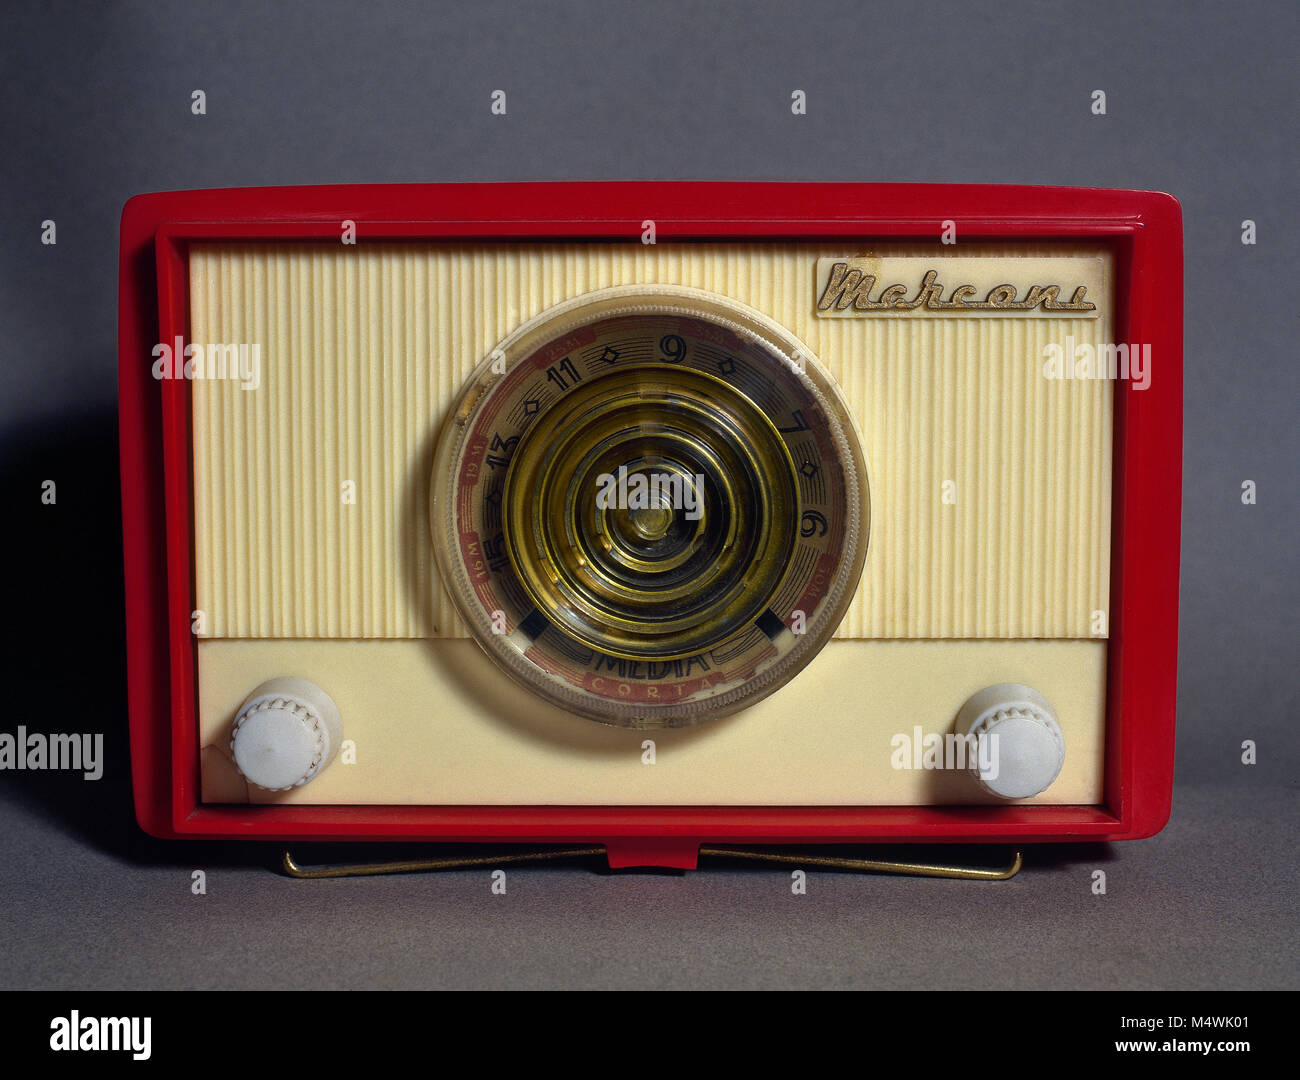 Old radio receiver, Marconi brand. - Stock Image